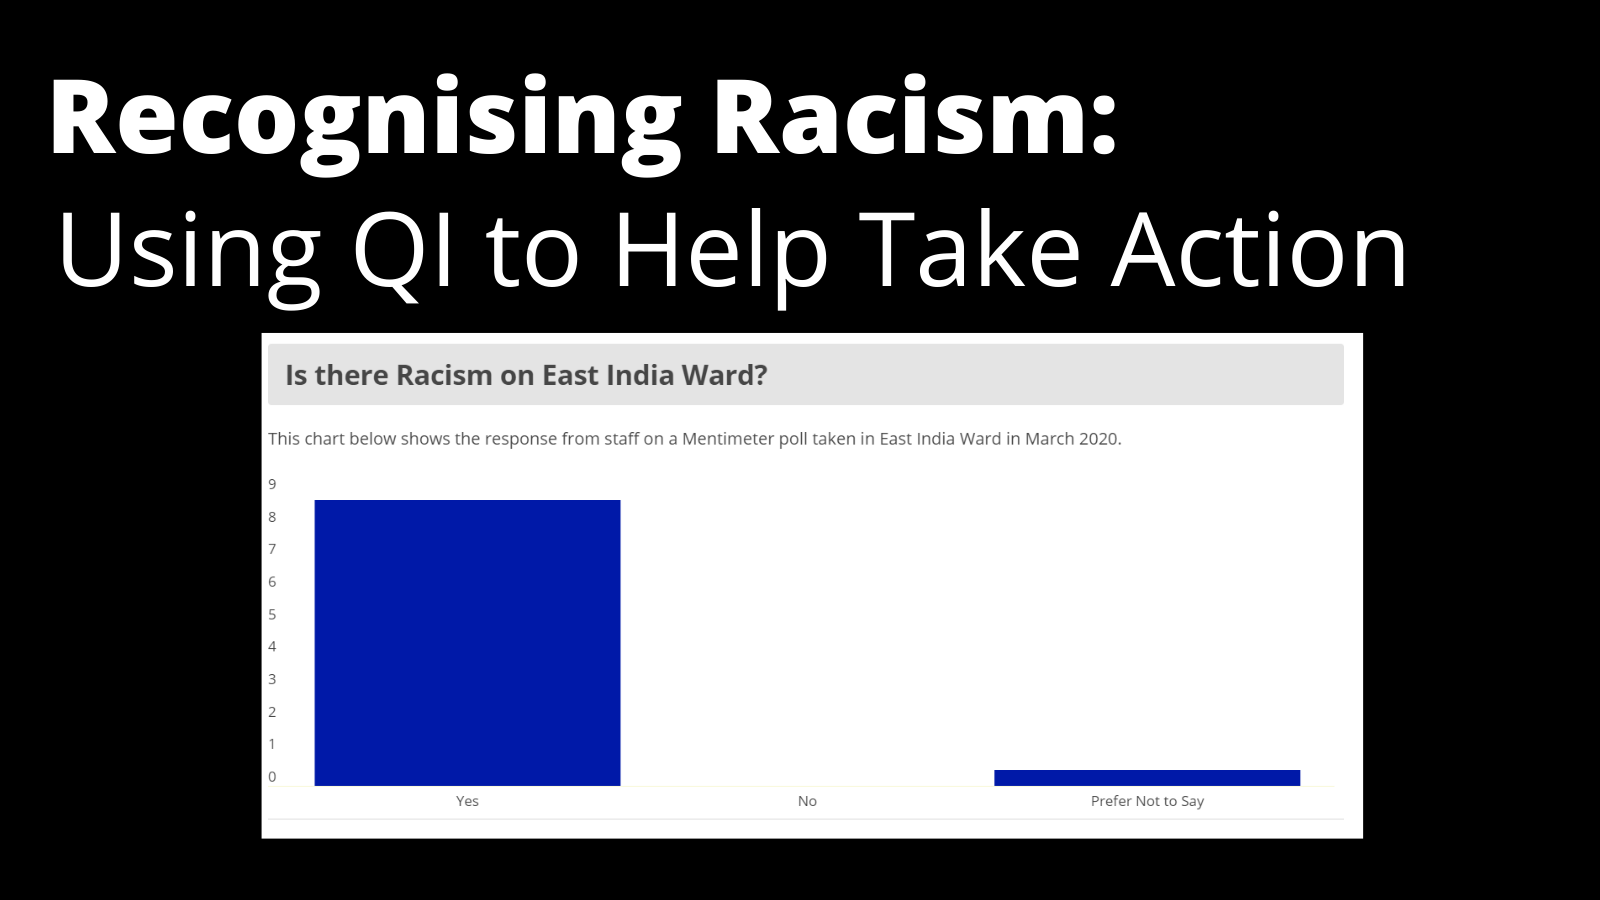 Recognising Racism: Using QI to Help Take Action